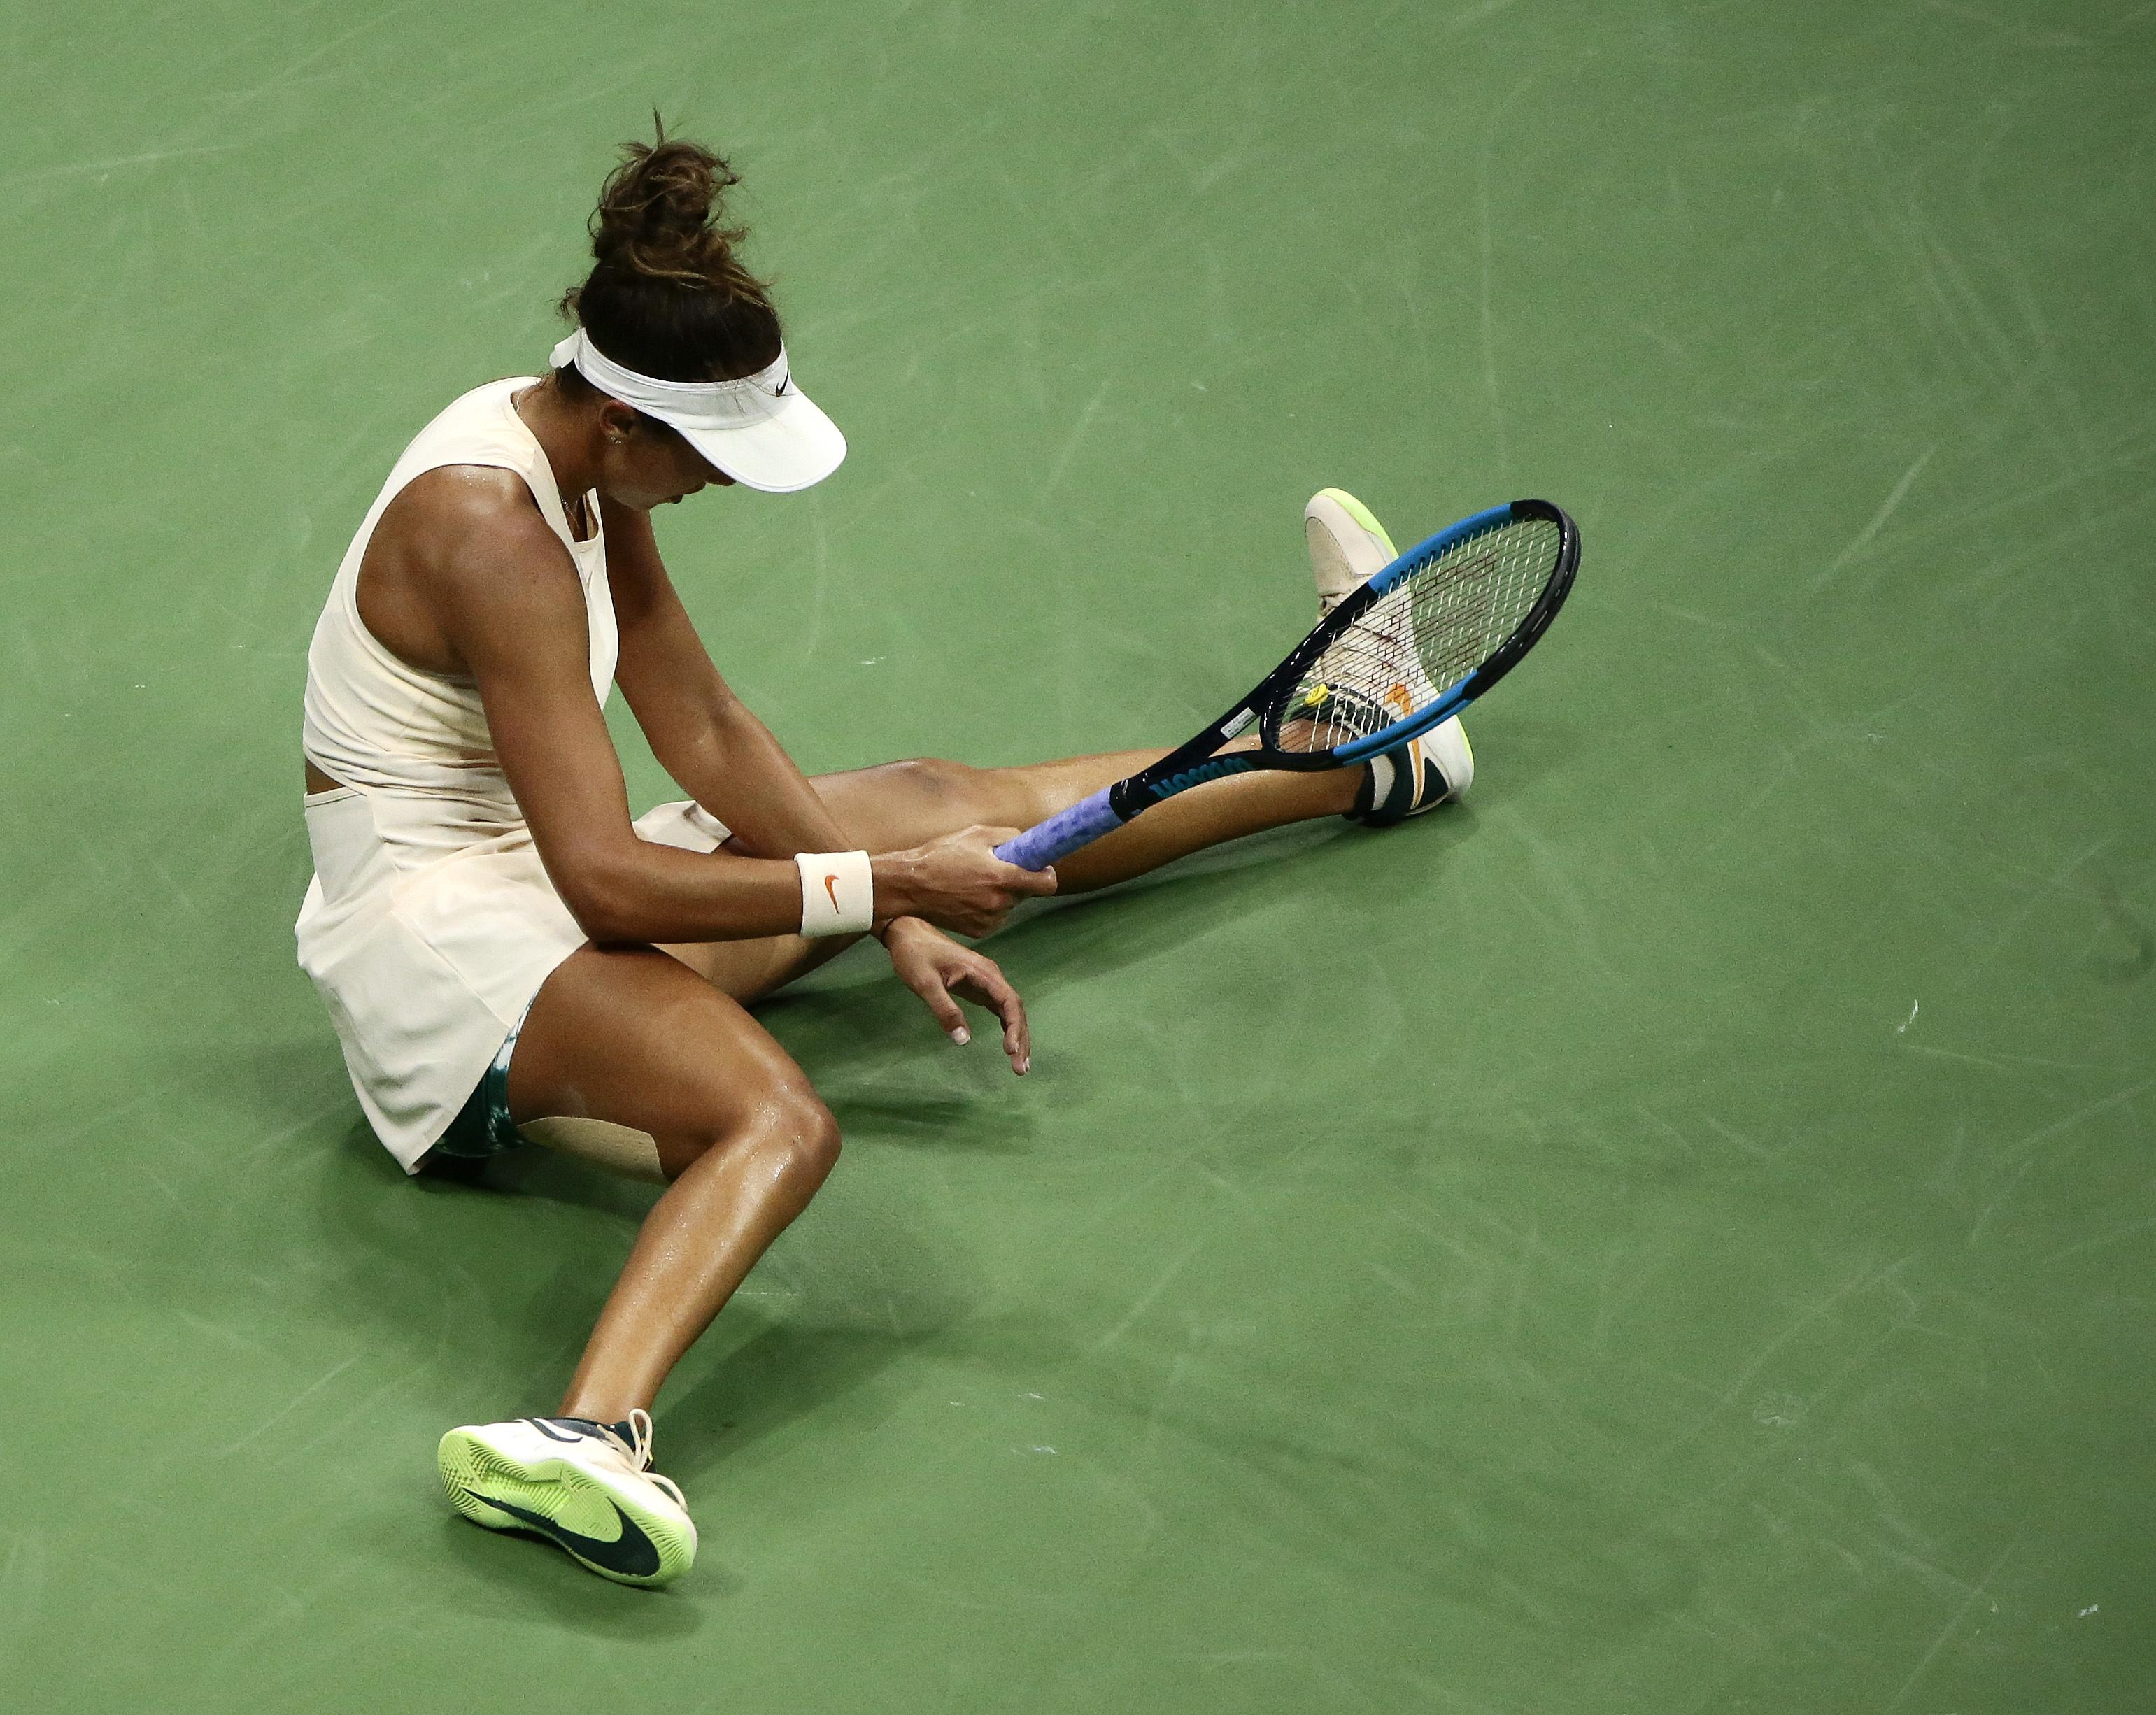 Keys reached the final at Flushing Meadows a year ago but fell at the semi-final stage this year